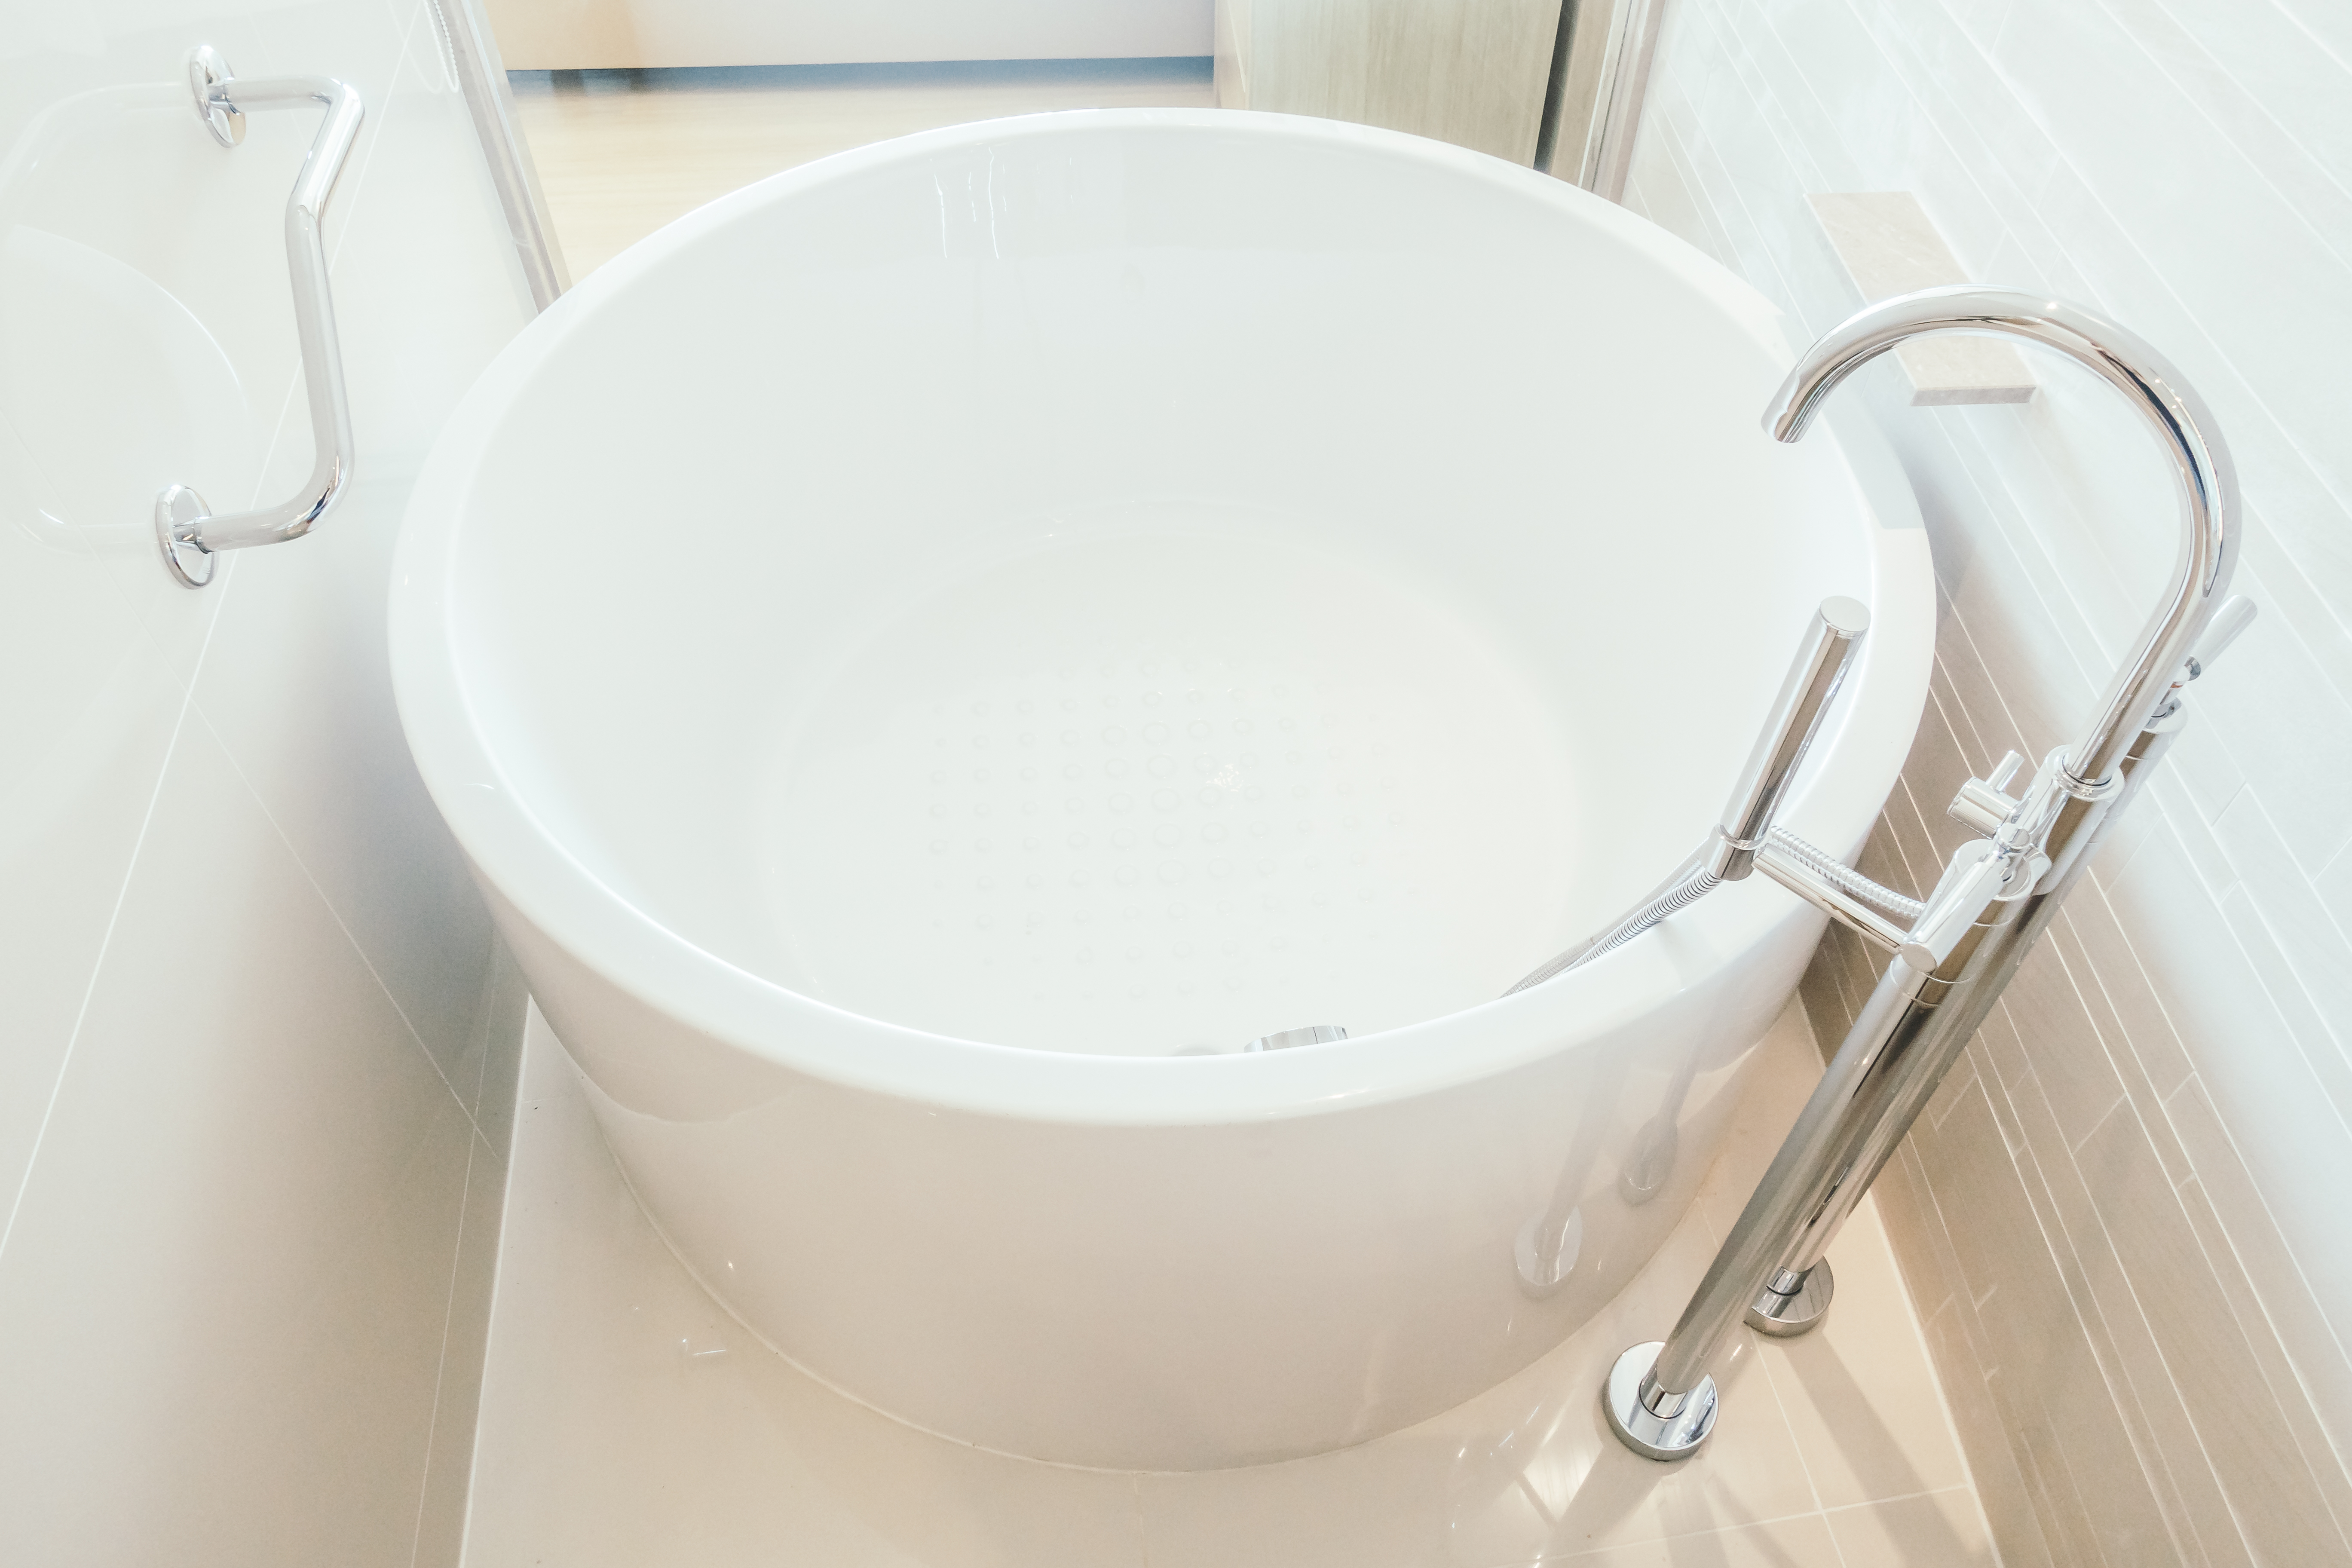 Grab Bar for a Shower